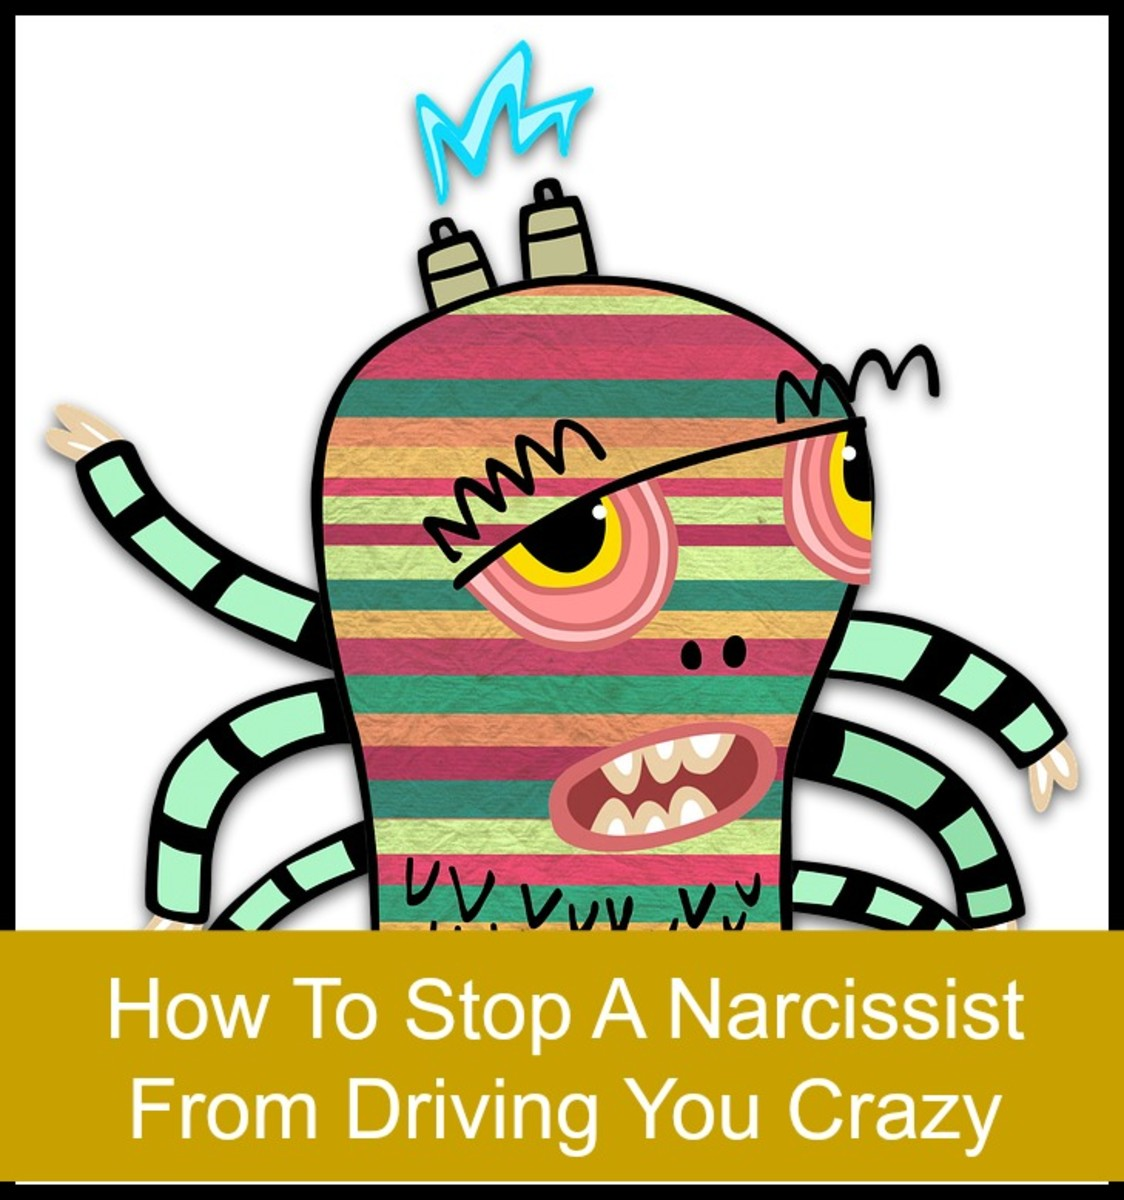 How to Stop a Narcissist from Driving You Crazy